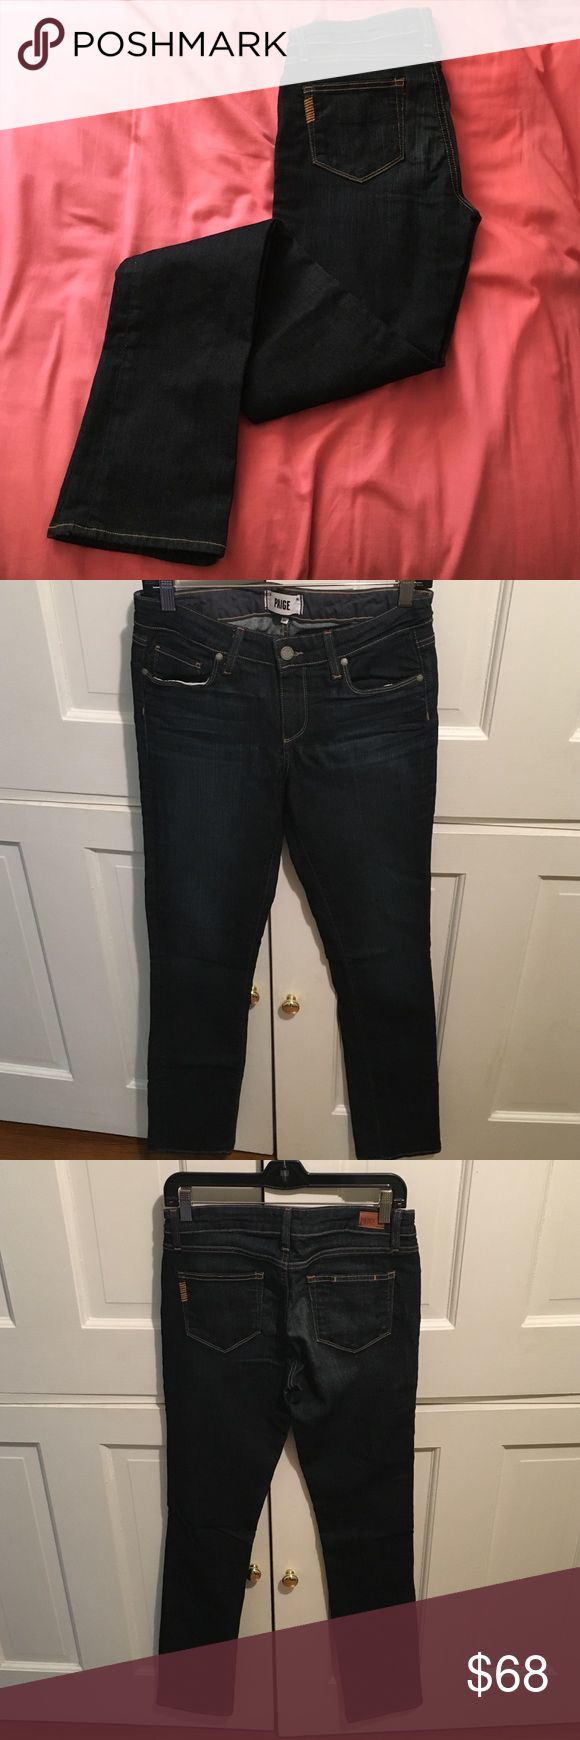 "SALE 🎉 Paige women's jeans Paige ""skyline straight"" women's jeans. Inseam is 35"" so perfect for tall girls. Dark denim. Item has only been worn once and is in amazing condition. 80% cotton, 19% polyester, 1% elastane Paige Jeans Jeans Straight Leg"